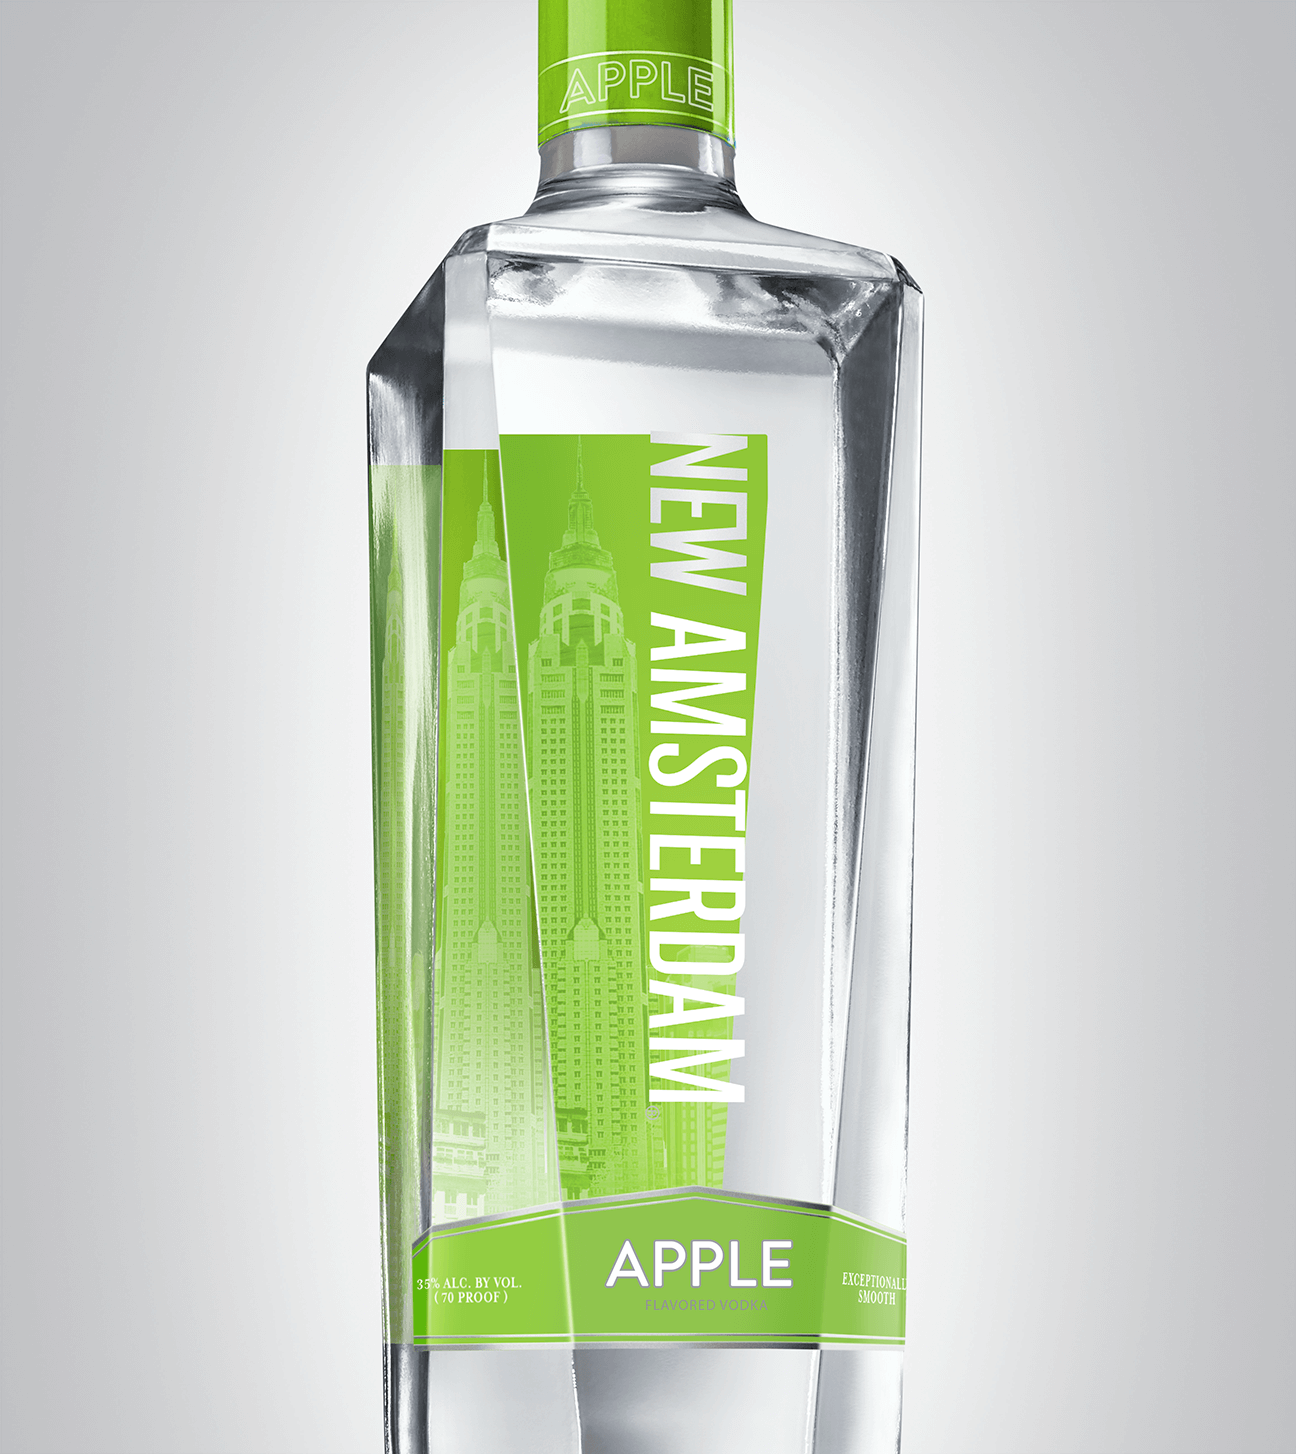 Bottle of New Amsterdam Apple